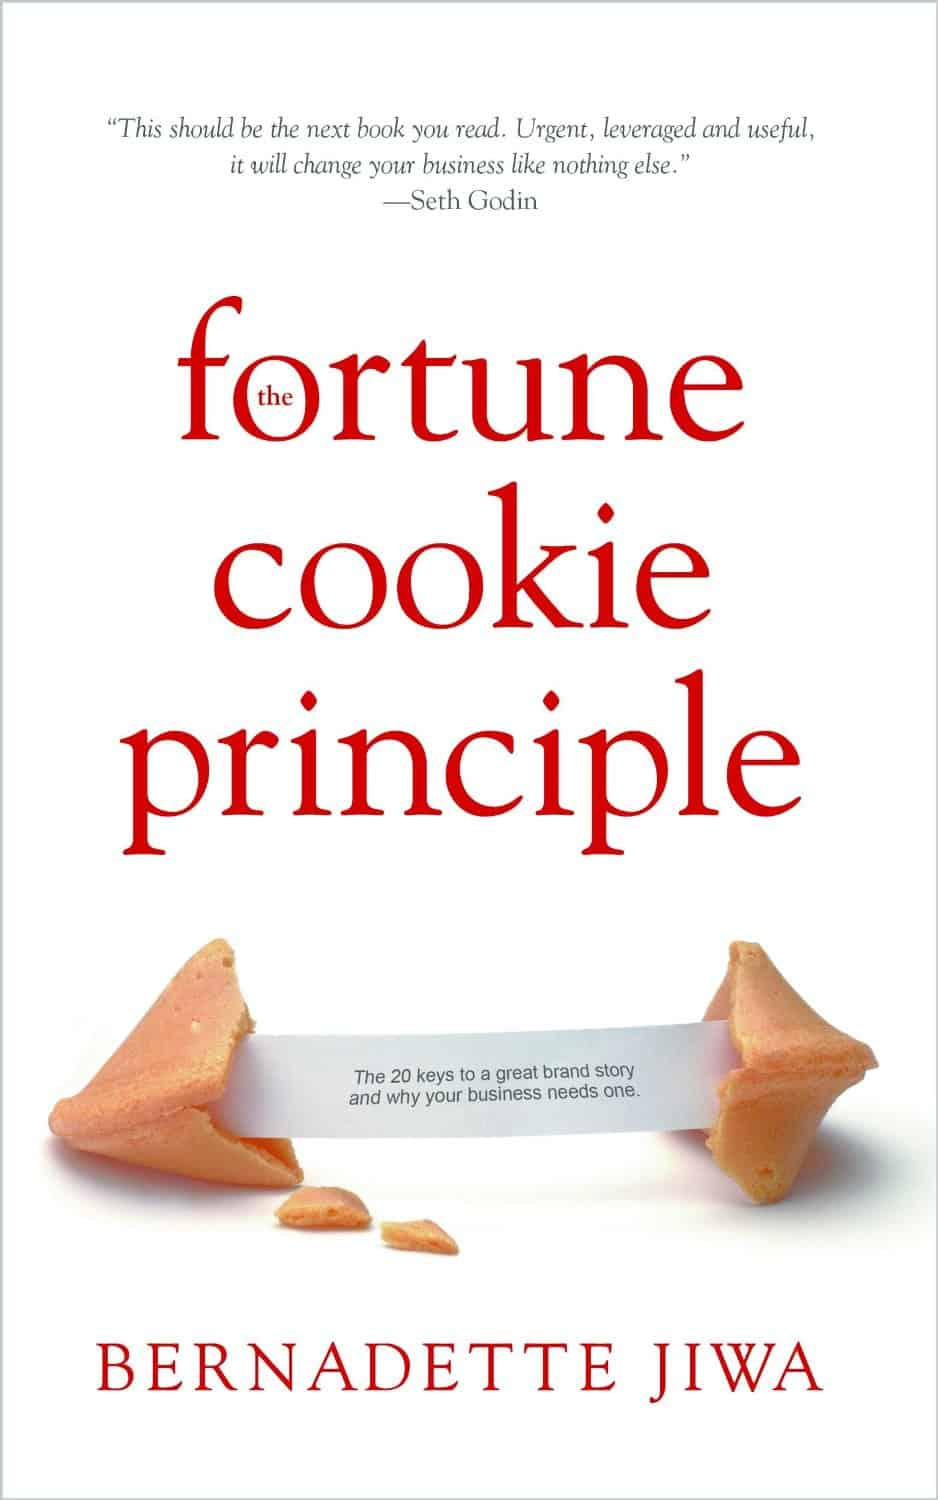 The Fortune Cookie Principle - The 20 Keys to a Great Brand Story and Why Your Business Needs One.